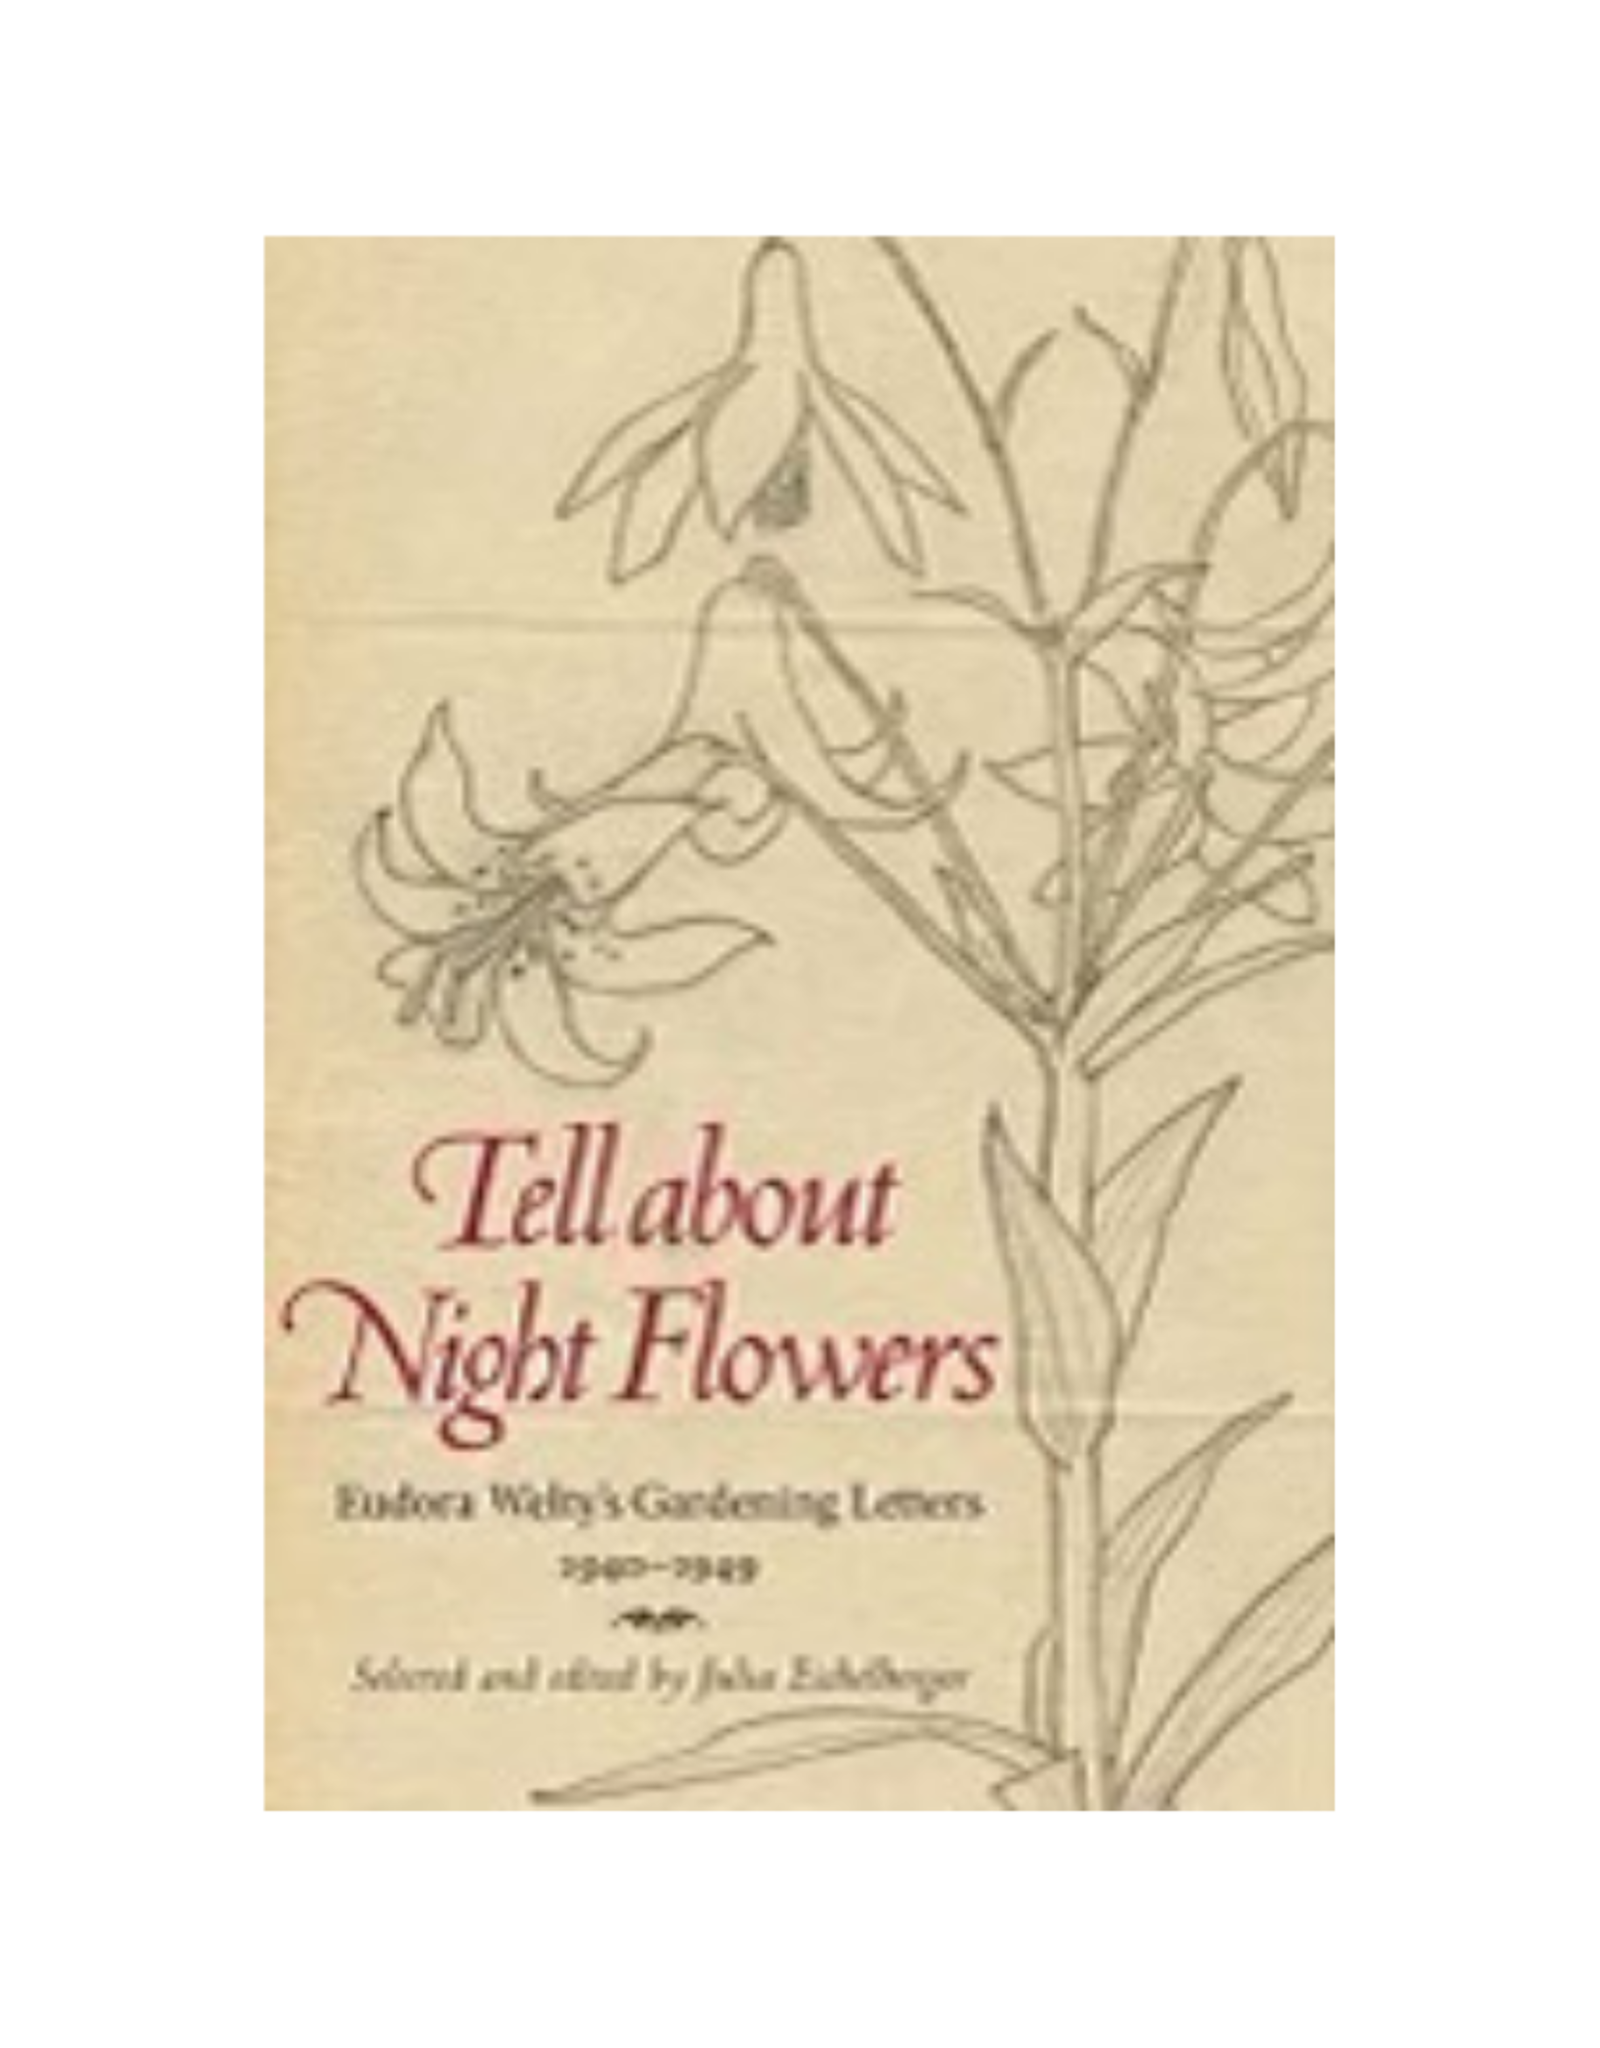 Tell about Night Flowers: Eudora Welty's Gardening Letters, 1940-1949